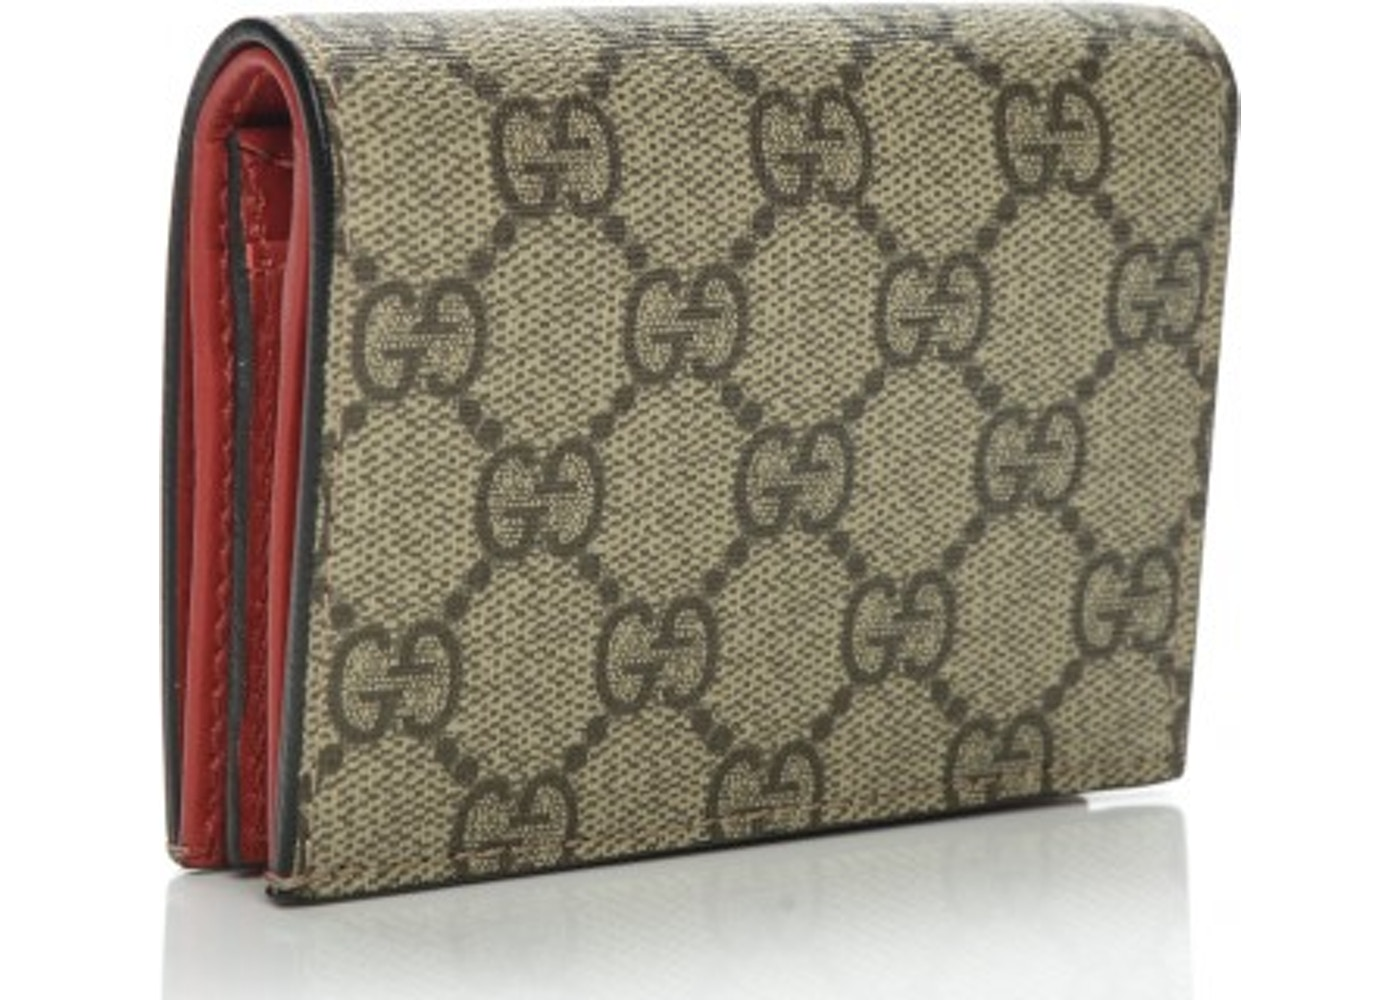 Gucci Card Case Wallet Monogram Gg Supreme Cherries Closure Ruby Crystals Brown Beige Hibiscus Red Green